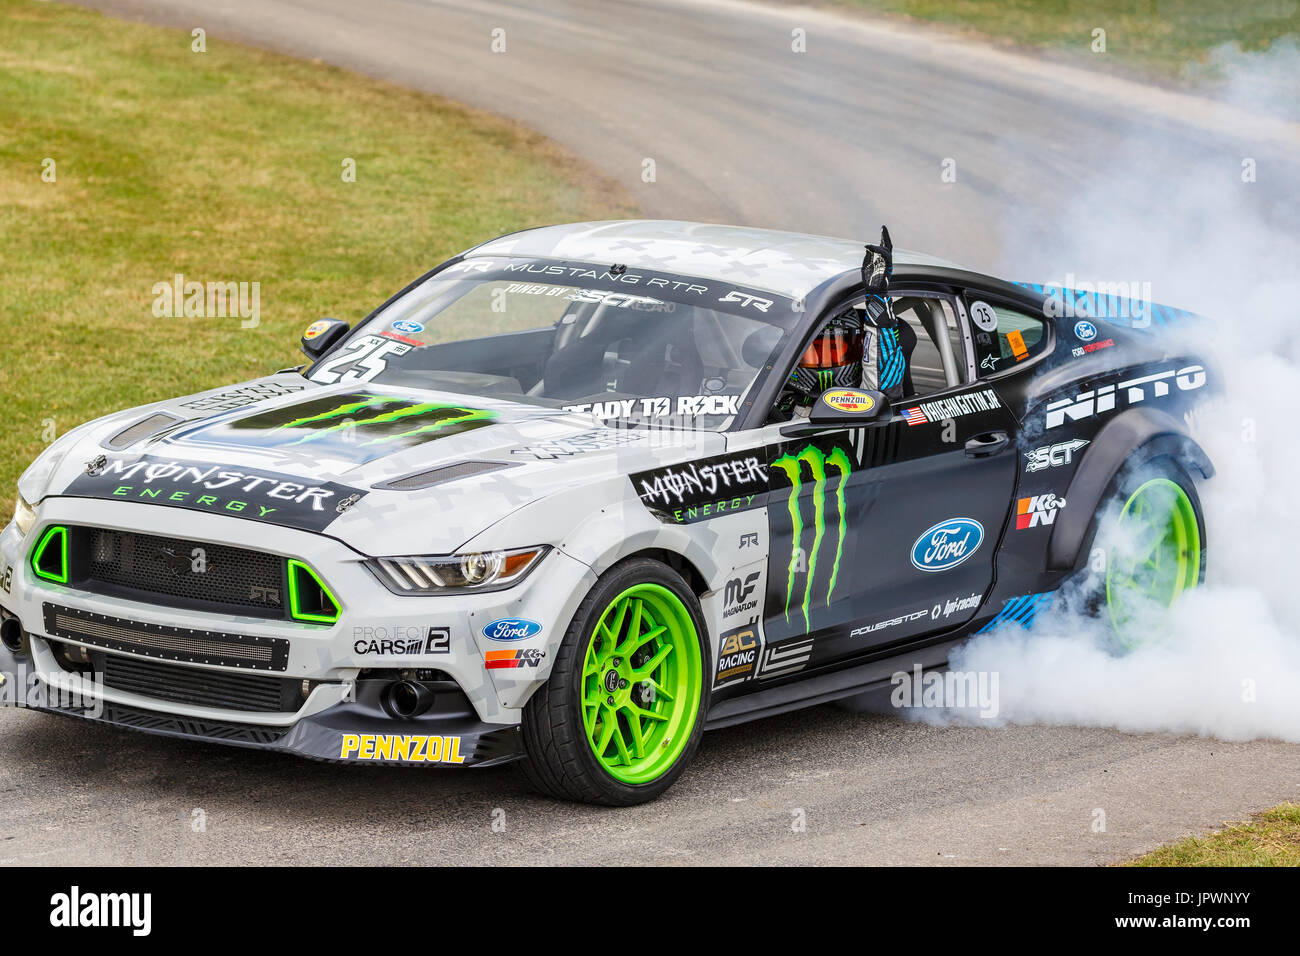 Ford Mustang 2018 Colors >> Monster Livery Stock Photos & Monster Livery Stock Images - Alamy